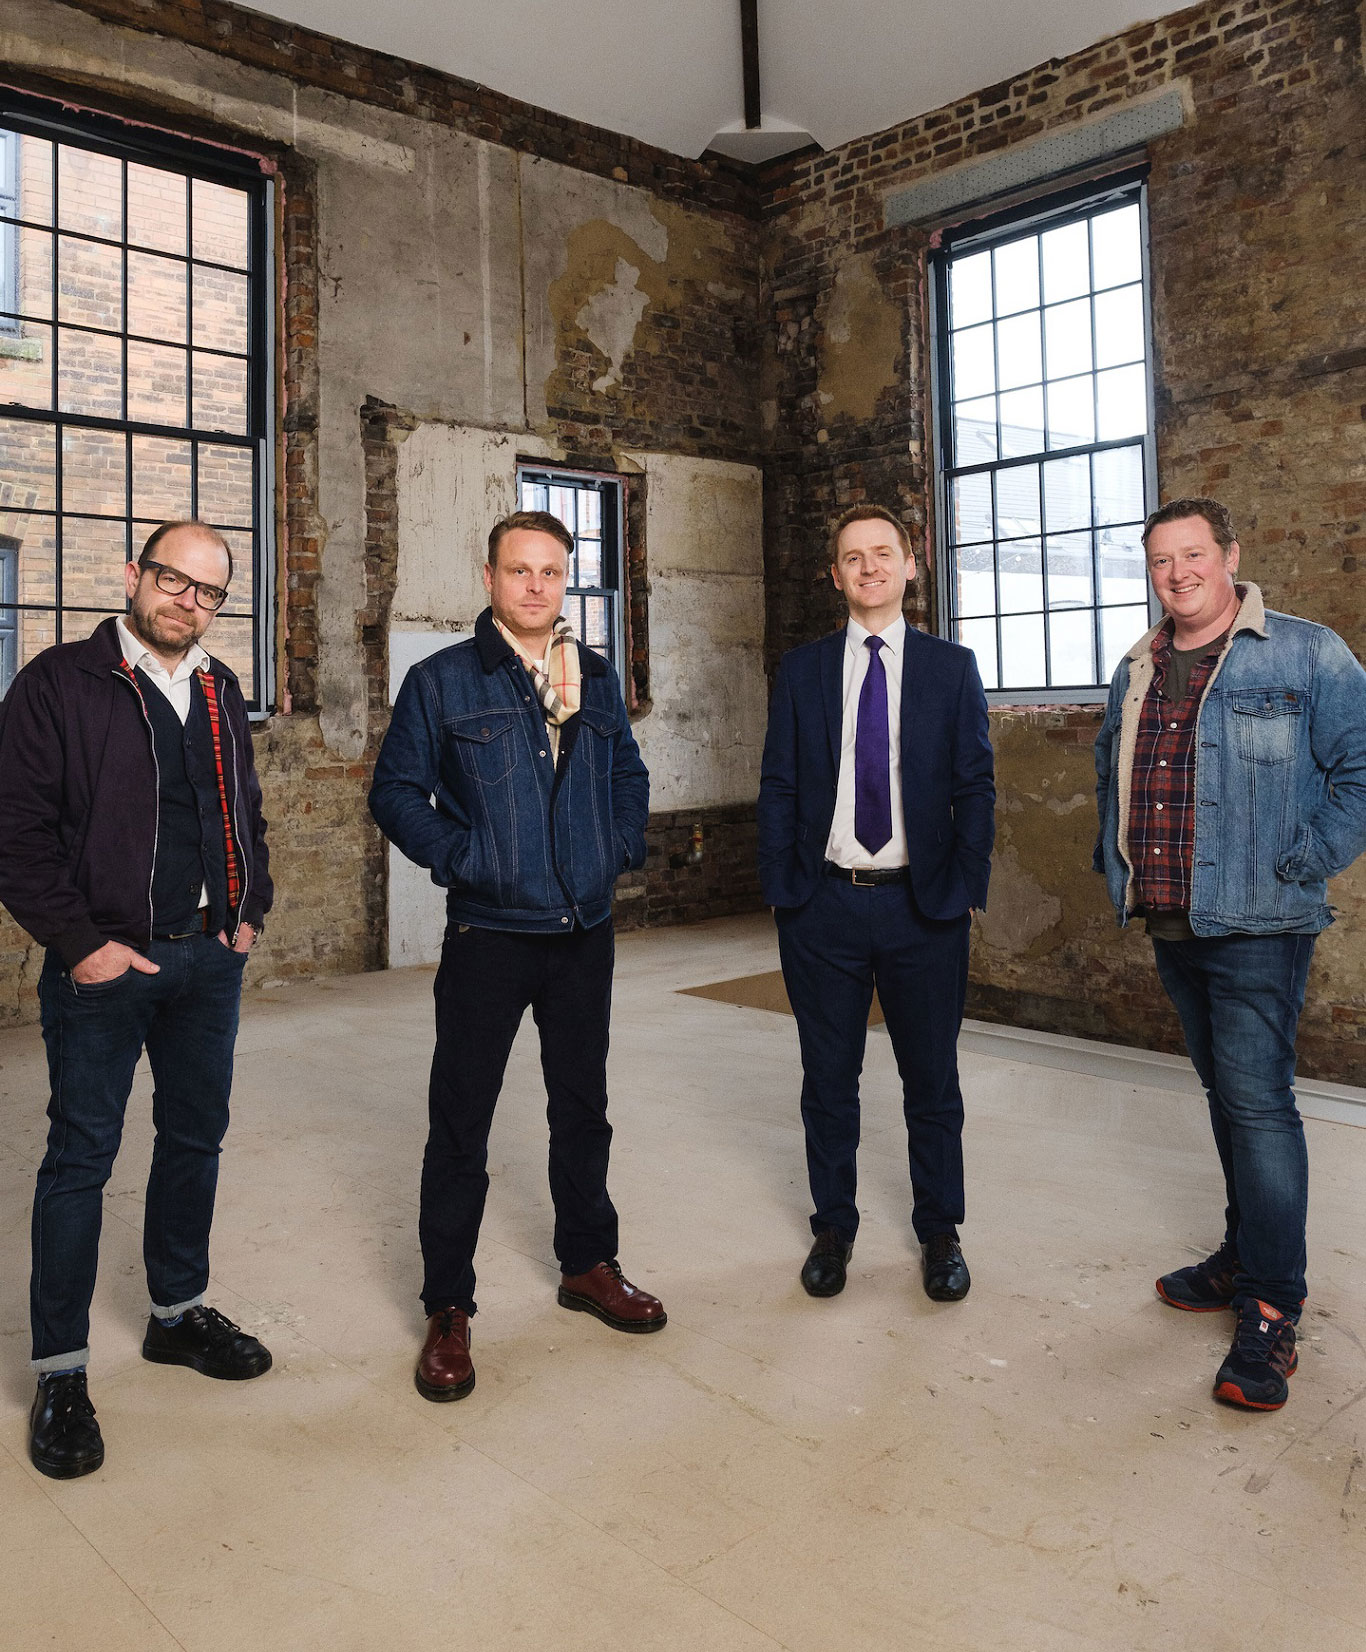 The restoration of  59 Humber Street  is the most extensive project carried out on a single building by Wykeland Beal as part of the regeneration of the Fruit Market. Pictured in the restored building are Wykeland Beal's Tom Watson, second from right, and business partners, from left, Chris Eastaugh, Jason Gittens and Dan Robinson, who plan to re-open the building under the name J. Johnson.